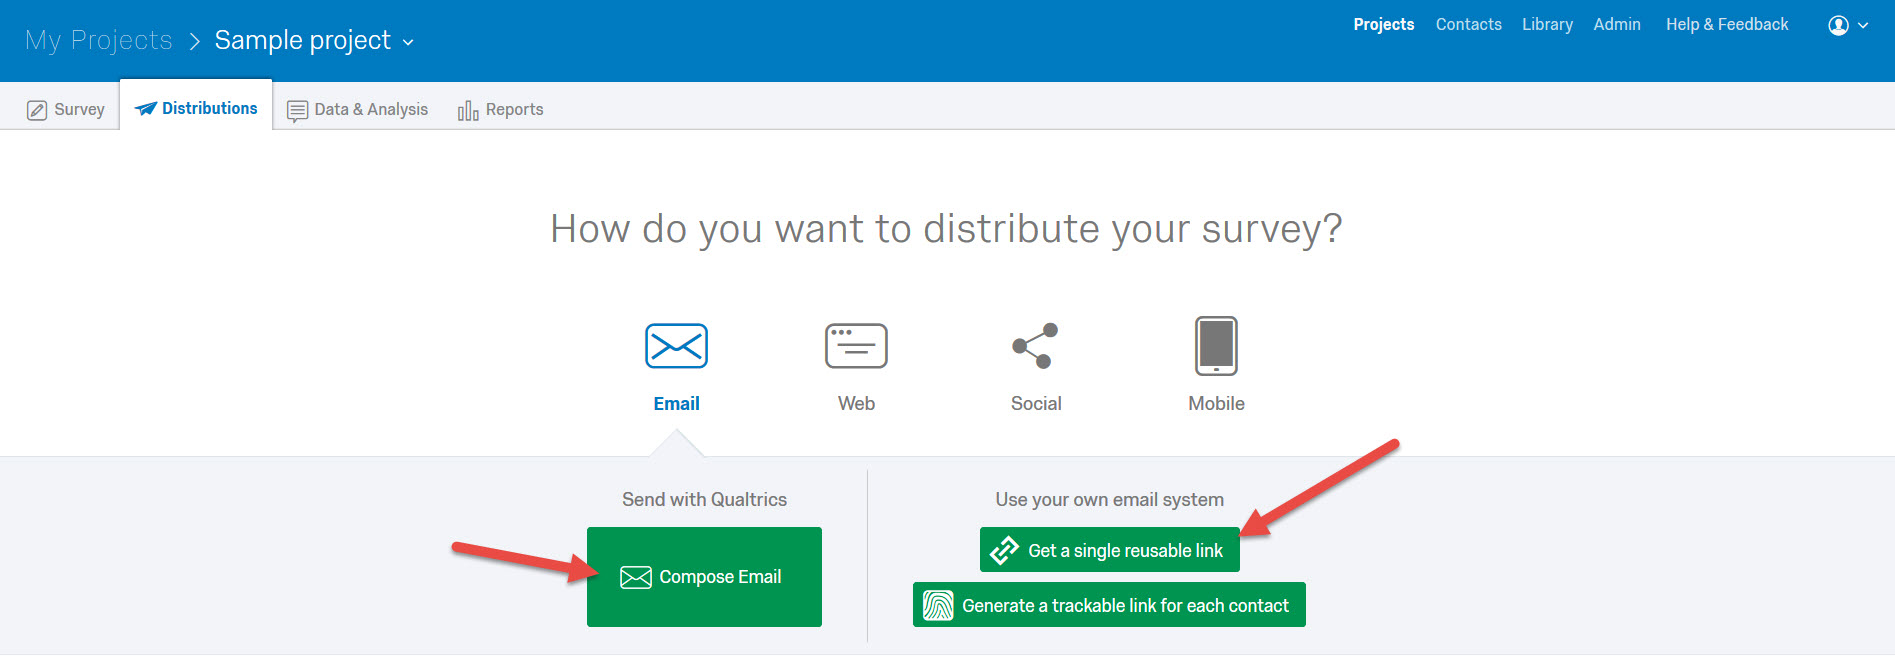 How to distribute the survey